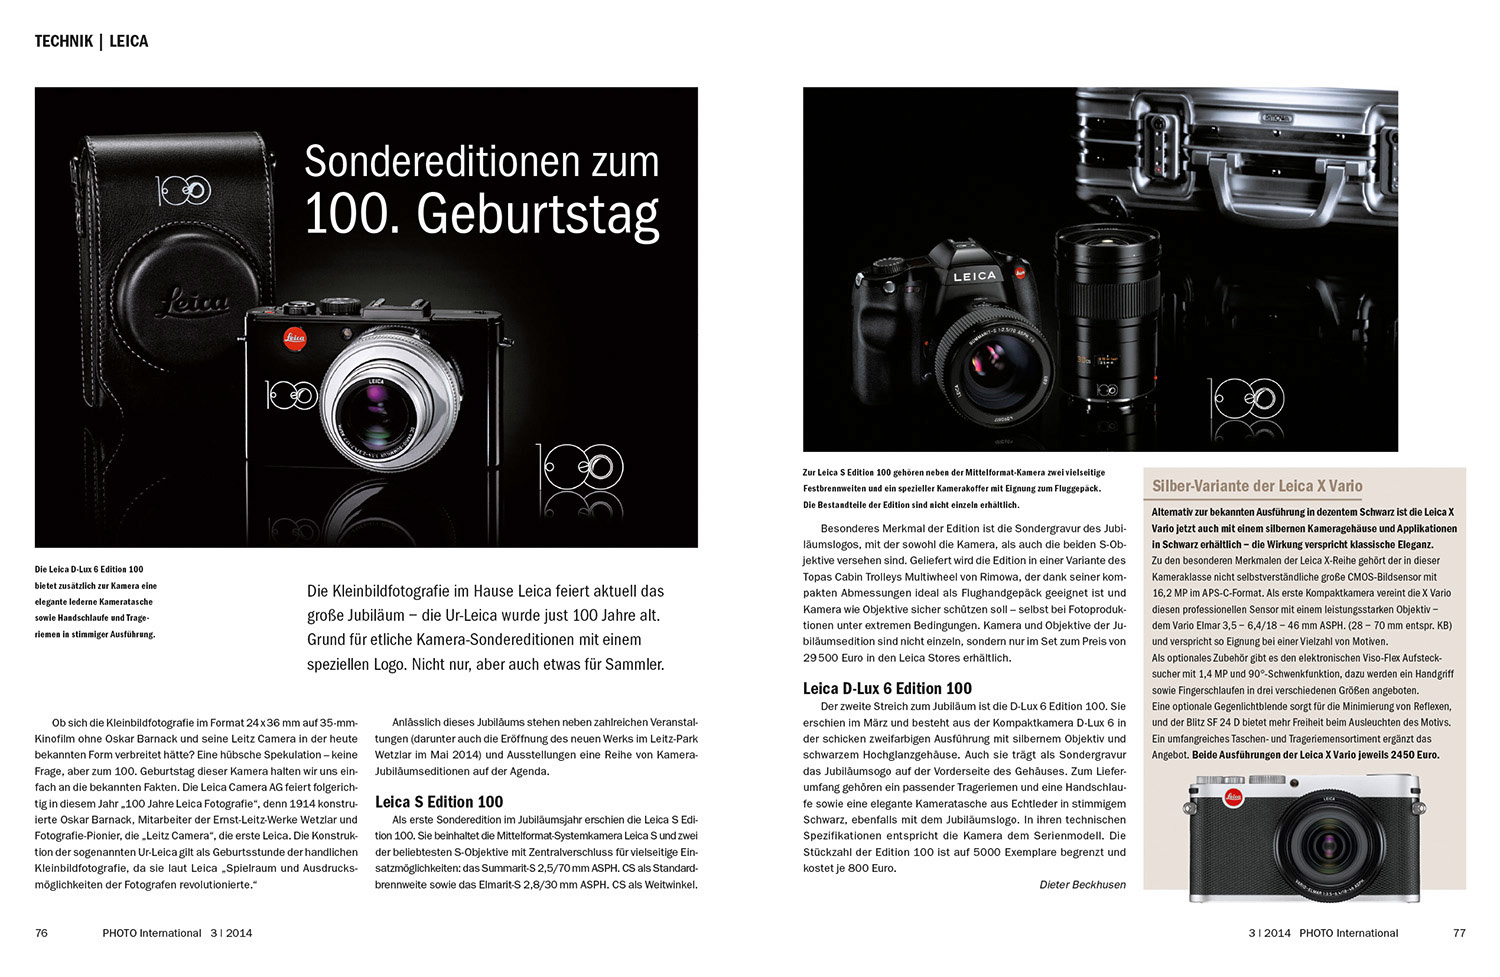 0314-Photo-International-Leica-100Jahre-w